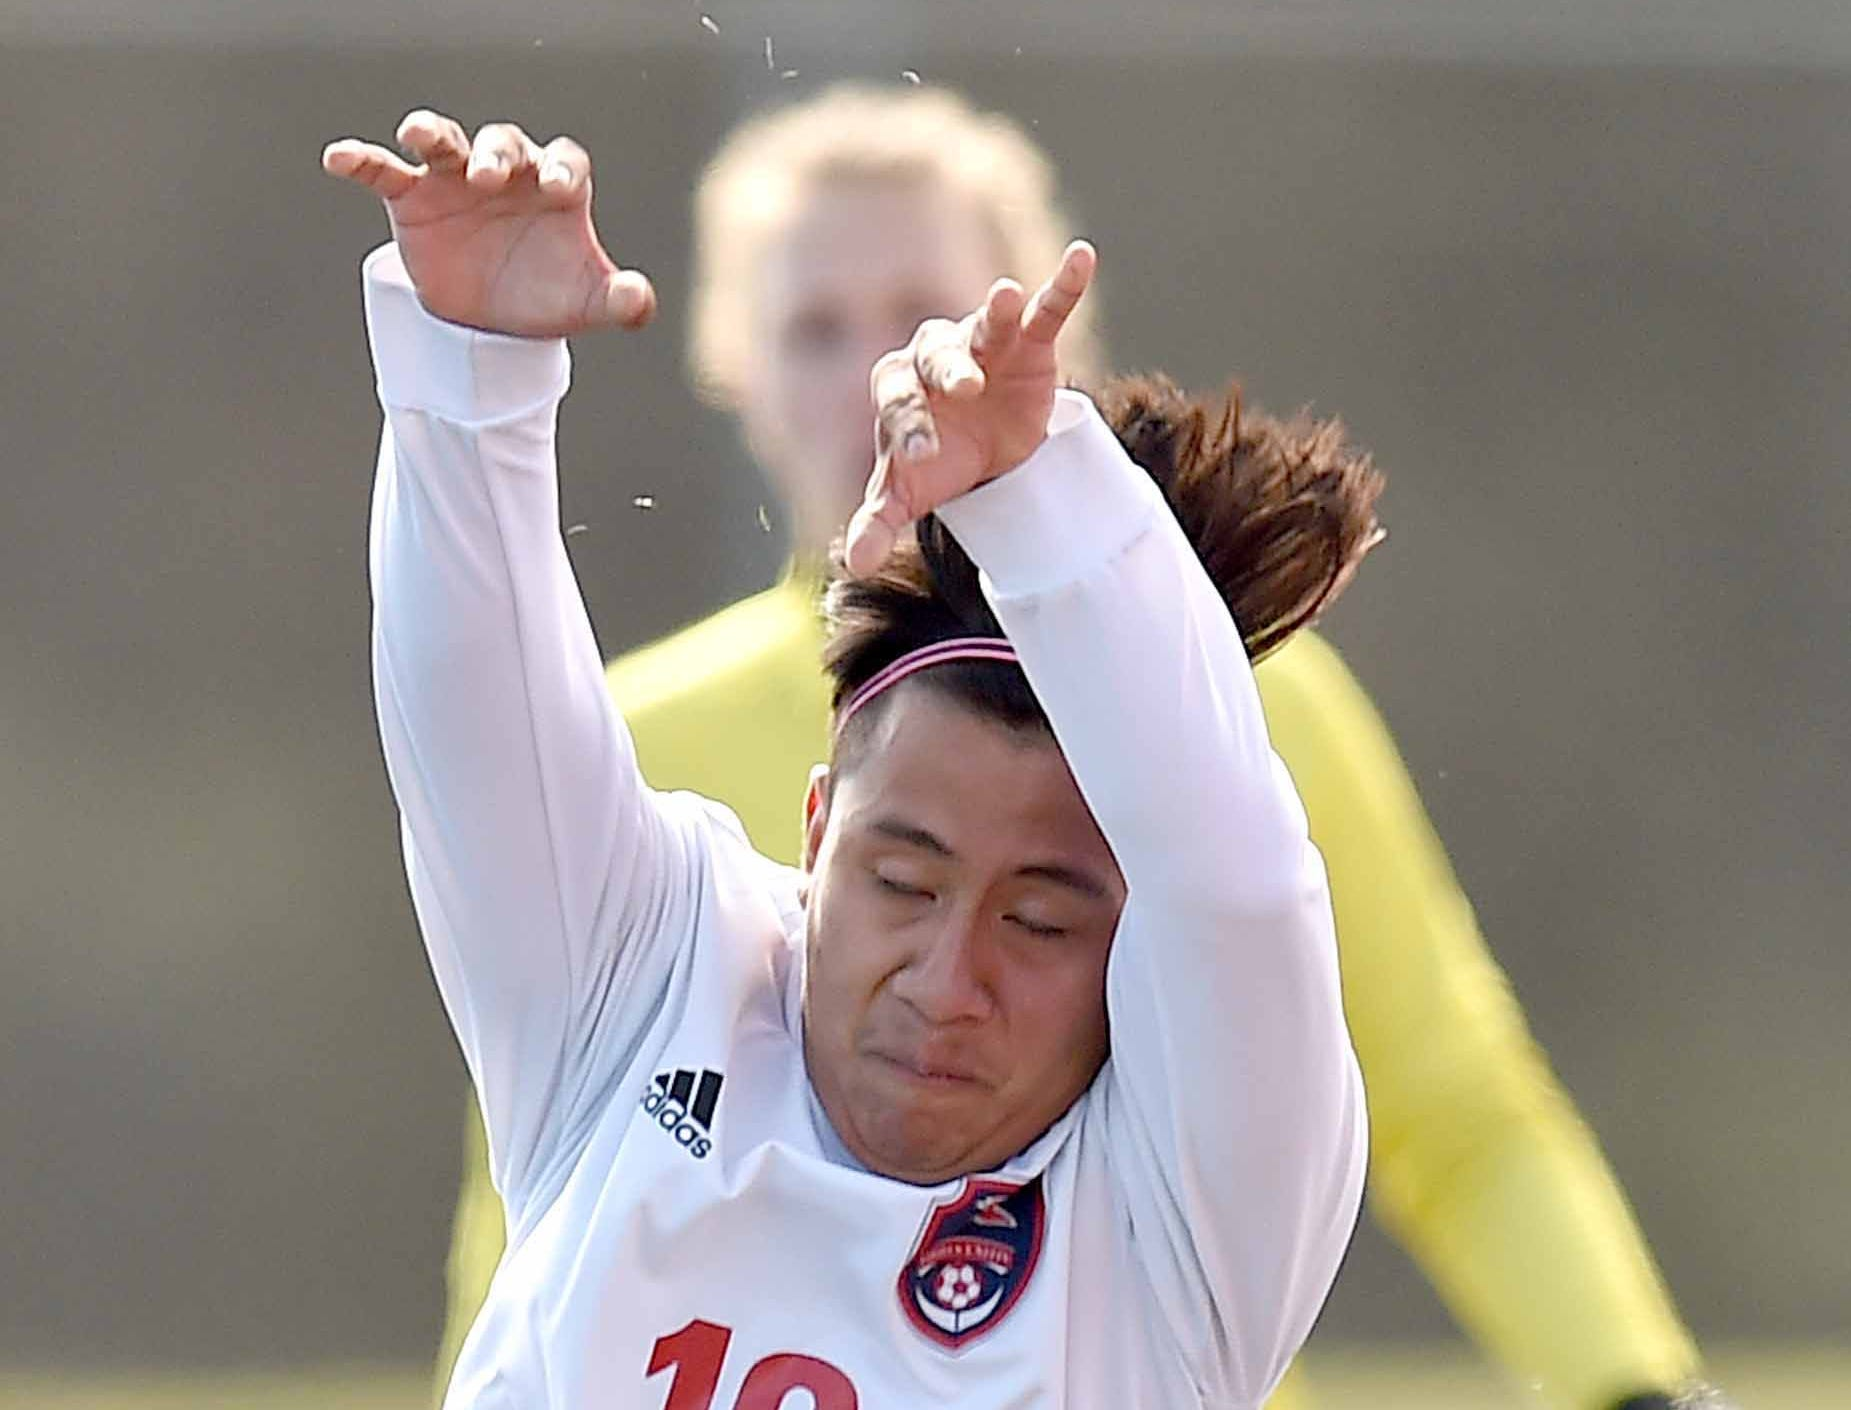 Richland's Alexander Mariano-Gregorio (16) throws in against West Lauderdale in the Class 4A state championship in the MHSAA BlueCross Blue Shield of Mississippi Soccer Classic on Saturday, February 9, 2019, at Ridgeland High School in Ridgeland, Miss.